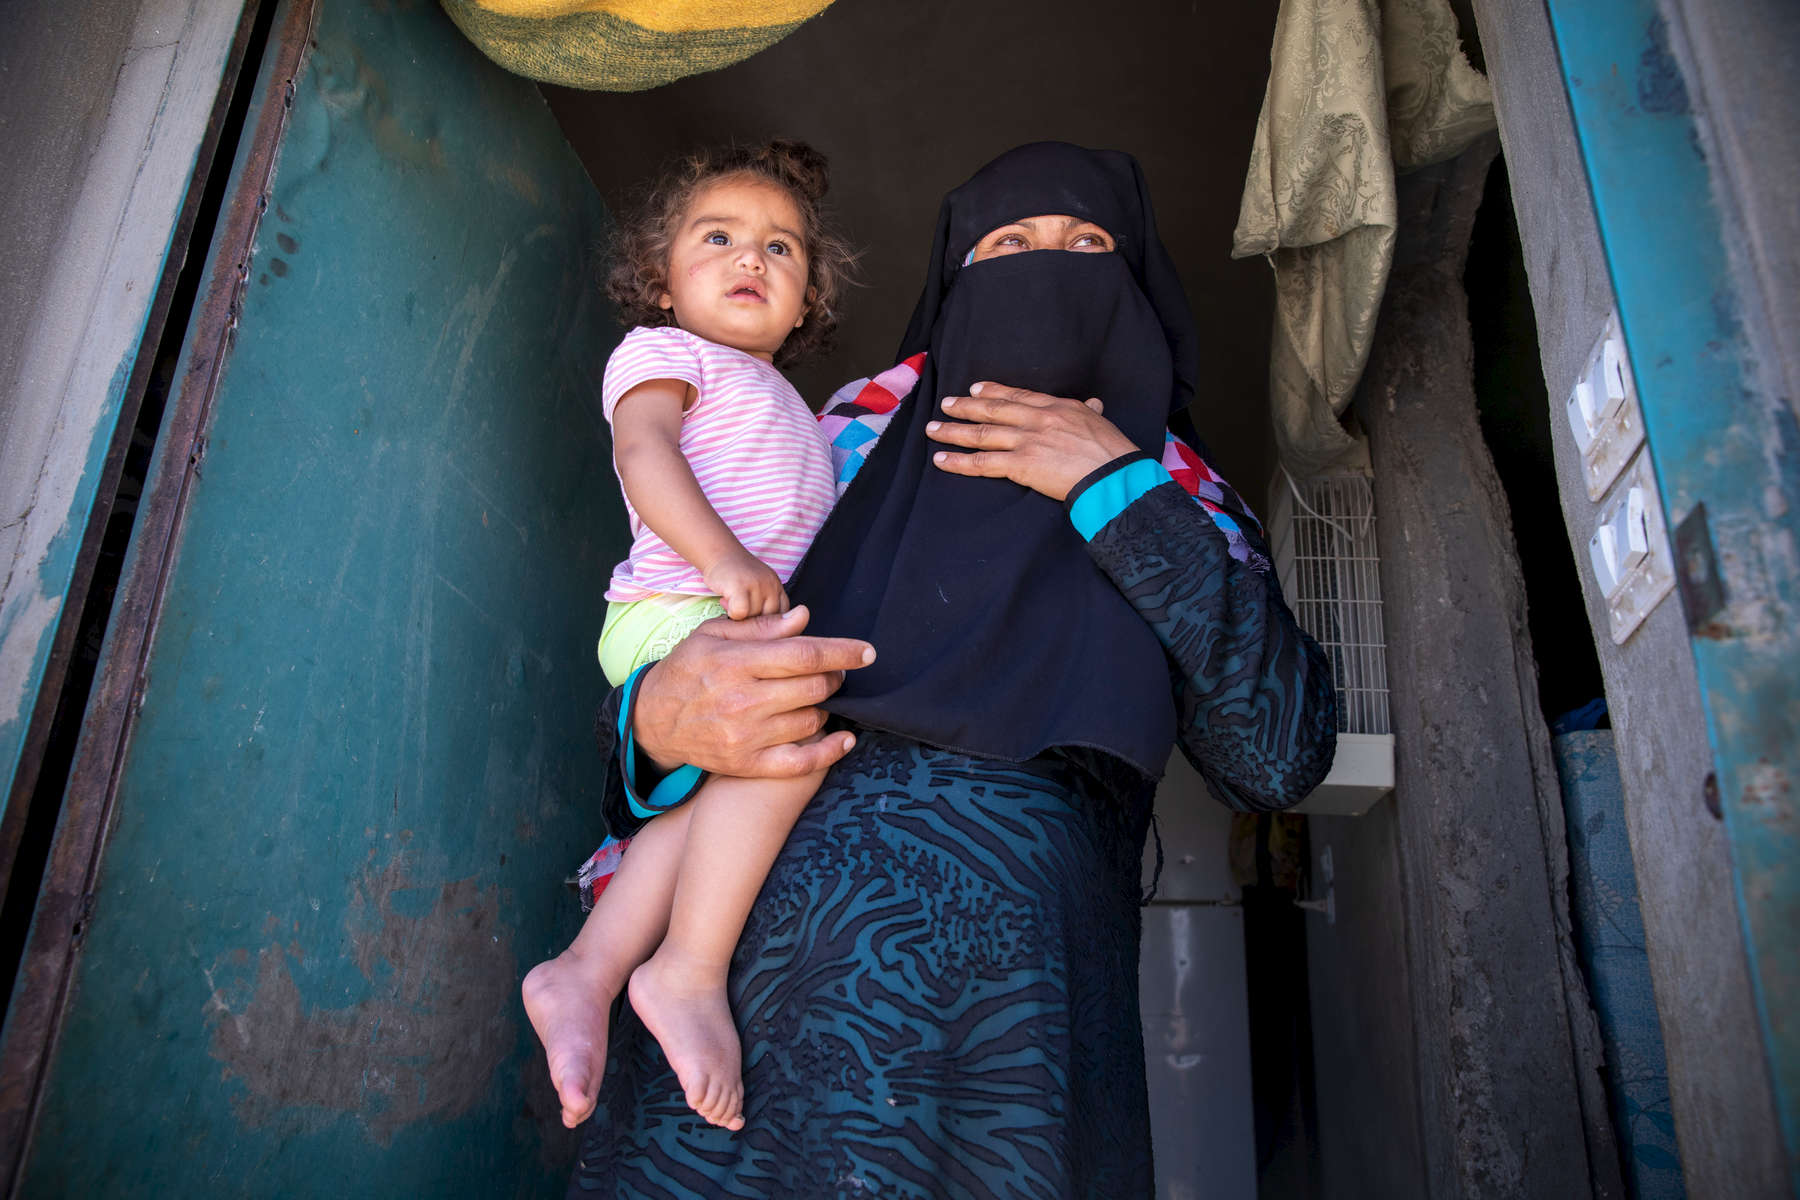 "Maha, 34, holds her 1-year-old daughter Heba. They are Syrian refugees. Maha's husband Mohammad has worked on and off in Jordan for several years, but the war in Syria has made it his permanent home—his house in Syria has been burned down. When his wife followed as war closed in, she was placed in Jordan's Azraq camp but fled after a few weeks. Together, they struggle to provide for their five children, who are out of school.Maha and Mohammad were separated by the war for more than two years. When they reunited, their daughter, Alala, didn't recognize him. Today they live together in a small tent in Jordanian desert, trying to scrape together work until peace returns.A few of Maha and Mohammad's kids are old enough to remember when war broke out in their town. ""My daughter, when the plane came … she started to cry, because she saw, in front of us, the plane carrying out massacres of innocent people,"" Maha says. In Syria, Mohammad and Maha were small farmers raising their kids in peace. But since war forced them from home, now they live as refugees, struggling to cope with what their family has been through. ""I swear that when the night comes, and we hear the sound of planes, my body starts to shake out of fear for my sons,"" Maha says.Mercy Corps connected the family to mobile banking, which they use to pay bills and save money on their phones. Their dream today is to continue on to Europe where their kids can continue their educations and live in peace. ""I've suffered,"" Mohammad says. ""I don't want them to suffer like me."""